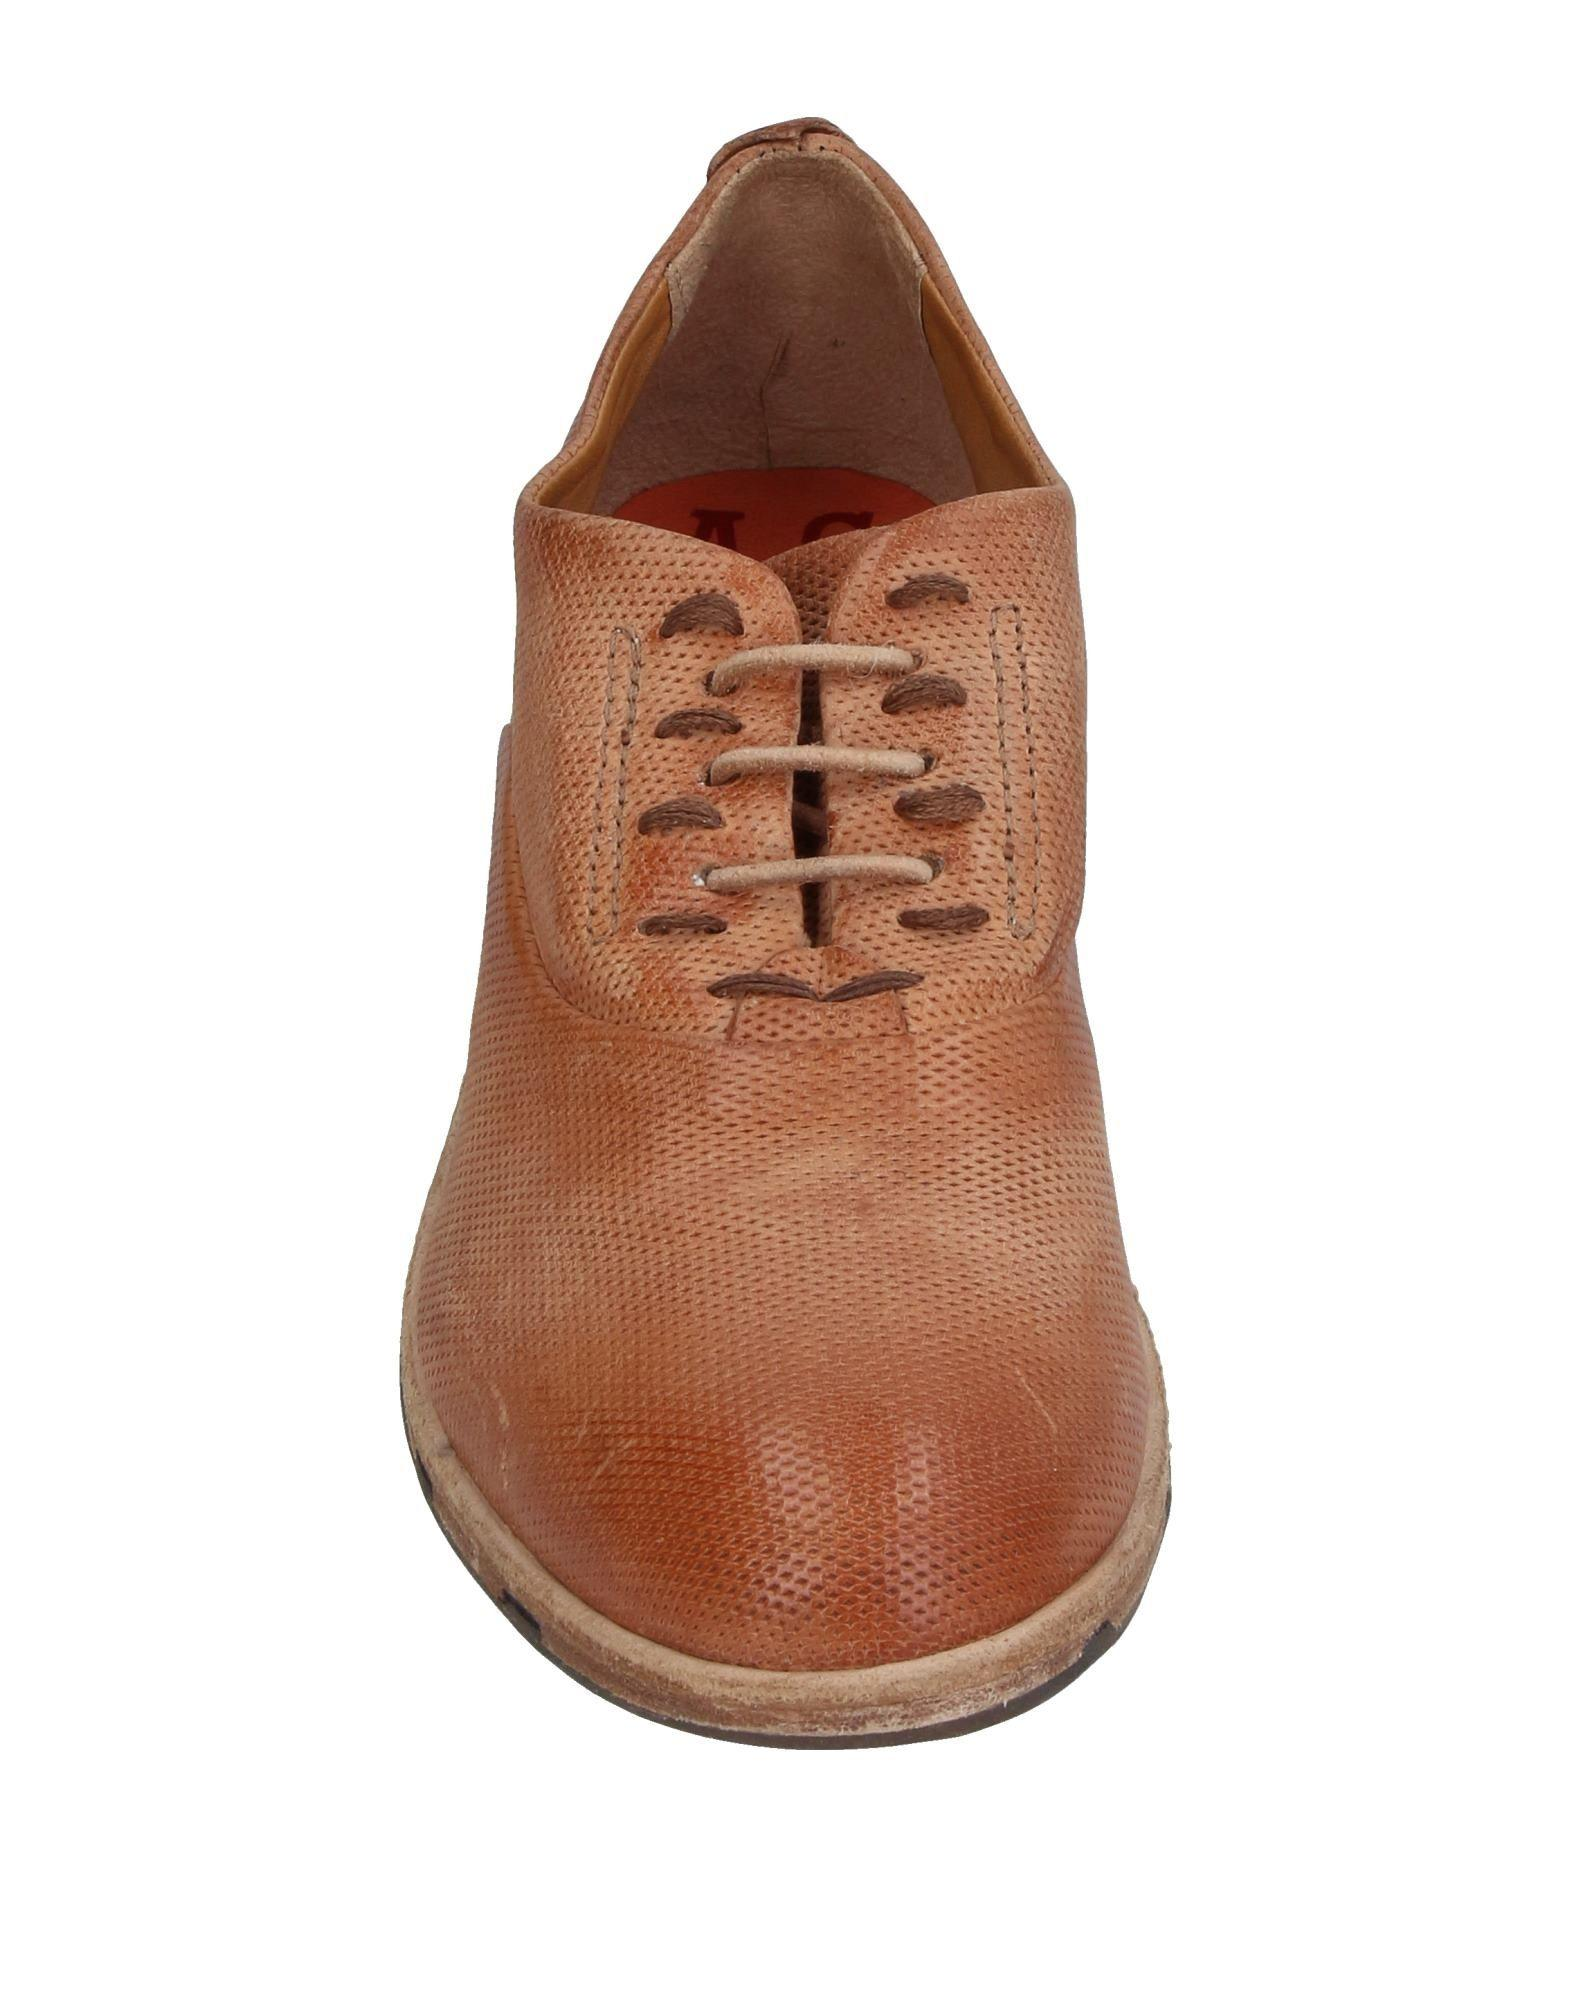 A.s.98 Leather Lace-up Shoe in Camel (Brown) for Men